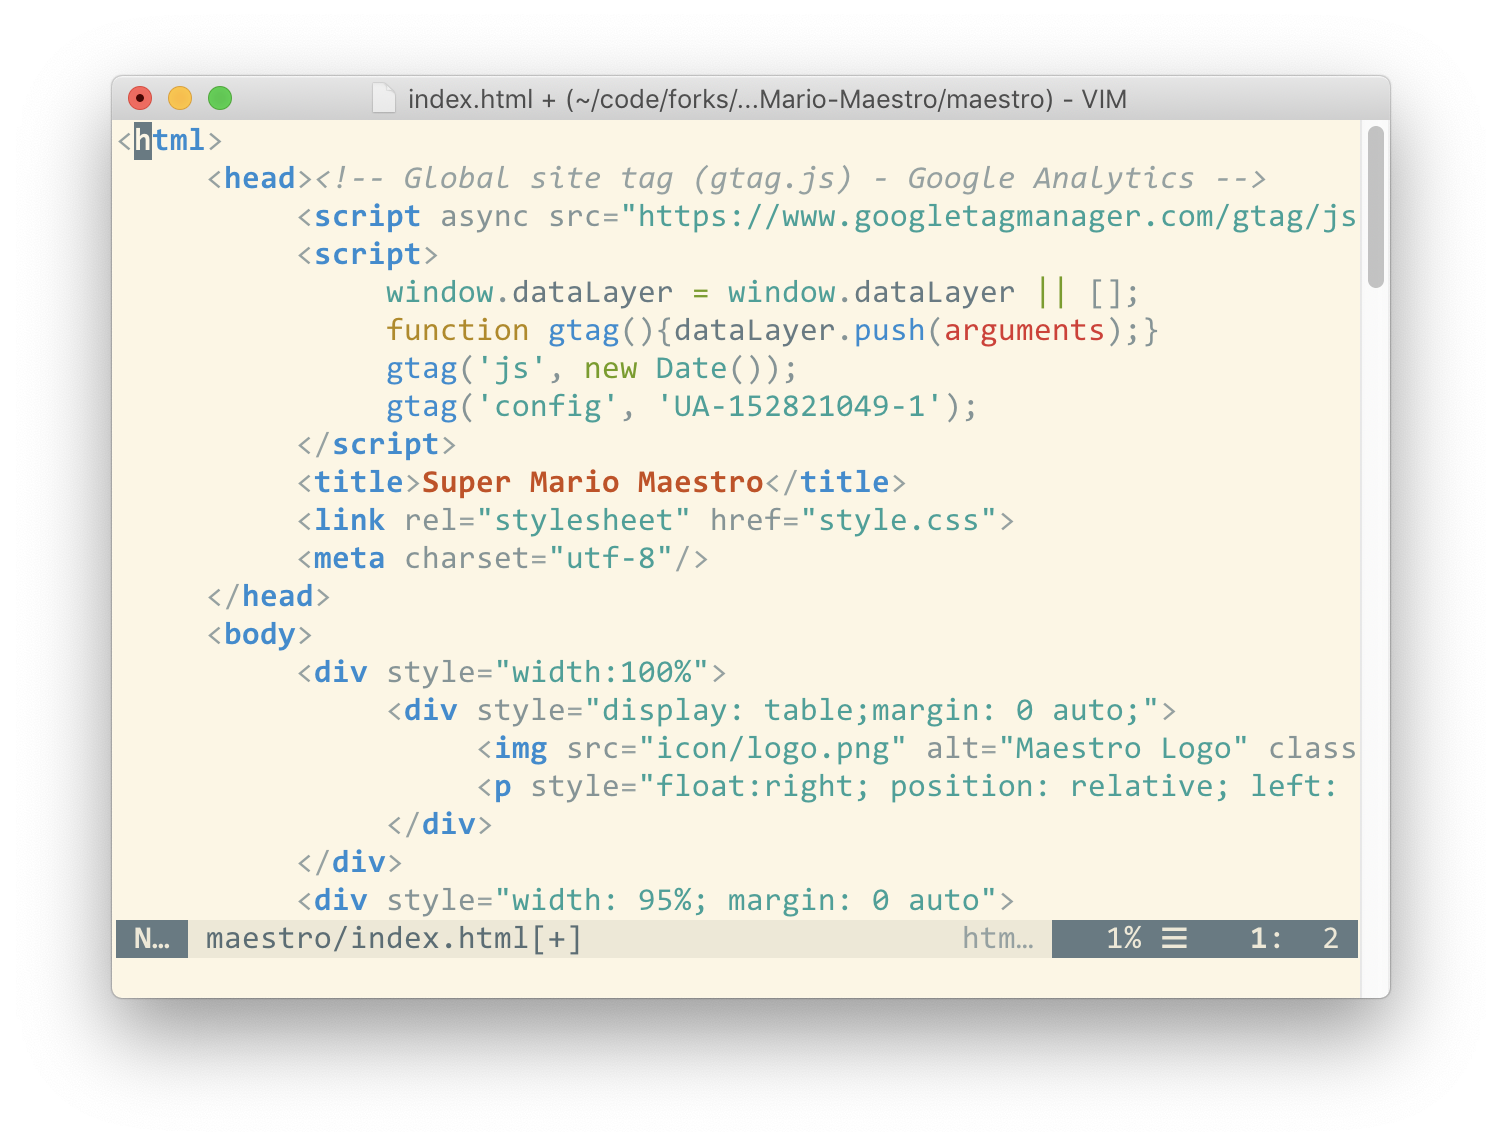 example of scroll bar in MacVim - top of scrollable view